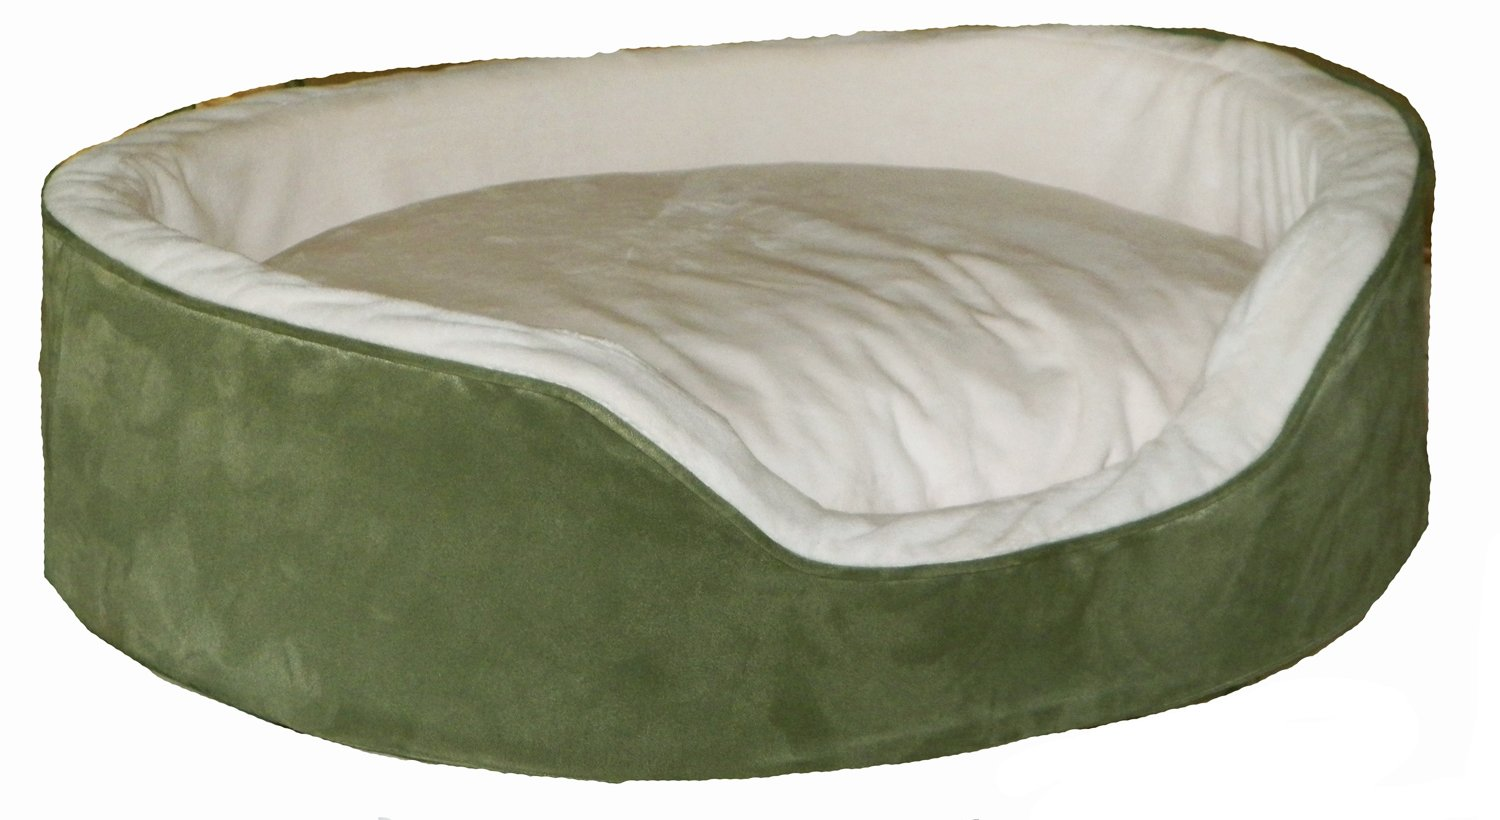 Pampered Pets Oval Bed, X-Large, Sage Green